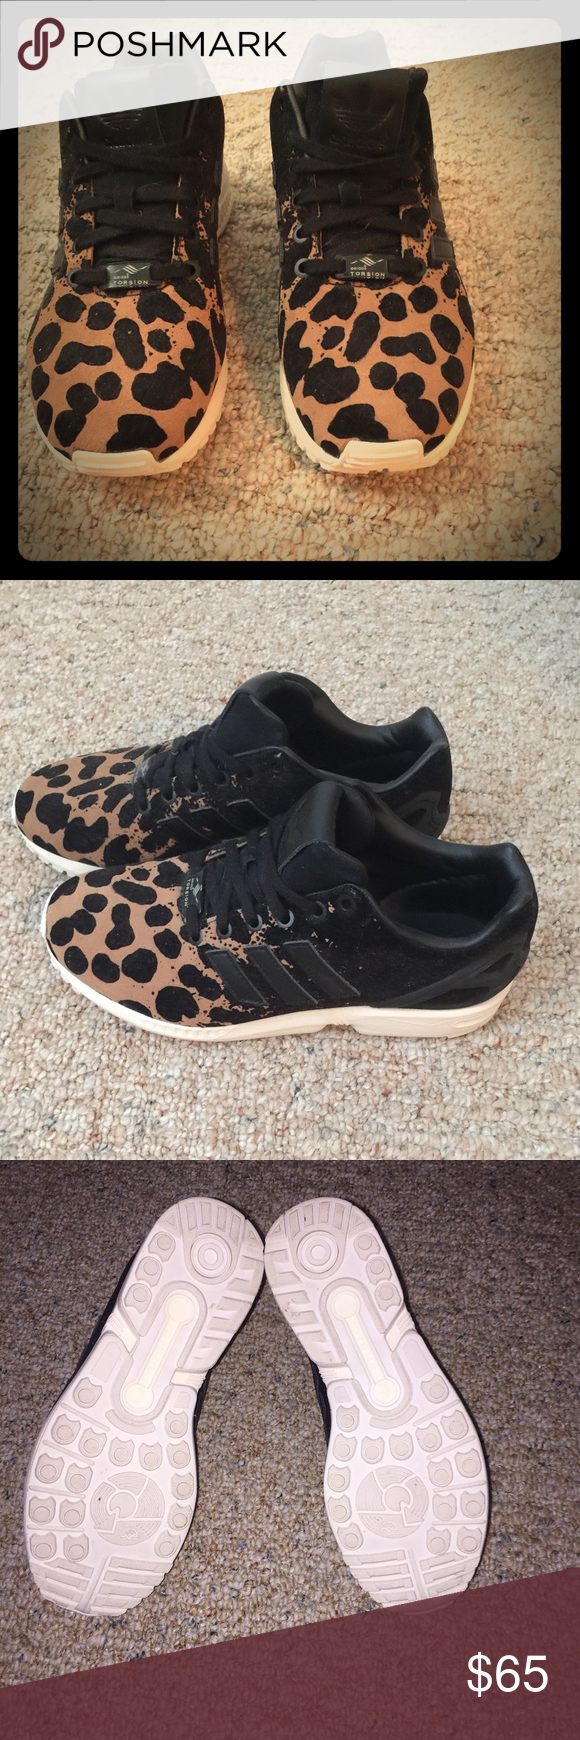 reputable site 166b4 afc30 Adidas ZX Flux leopard print running shoes. Size 8 Adidas running shoes.  Worn once. adidas Shoes Sneakers